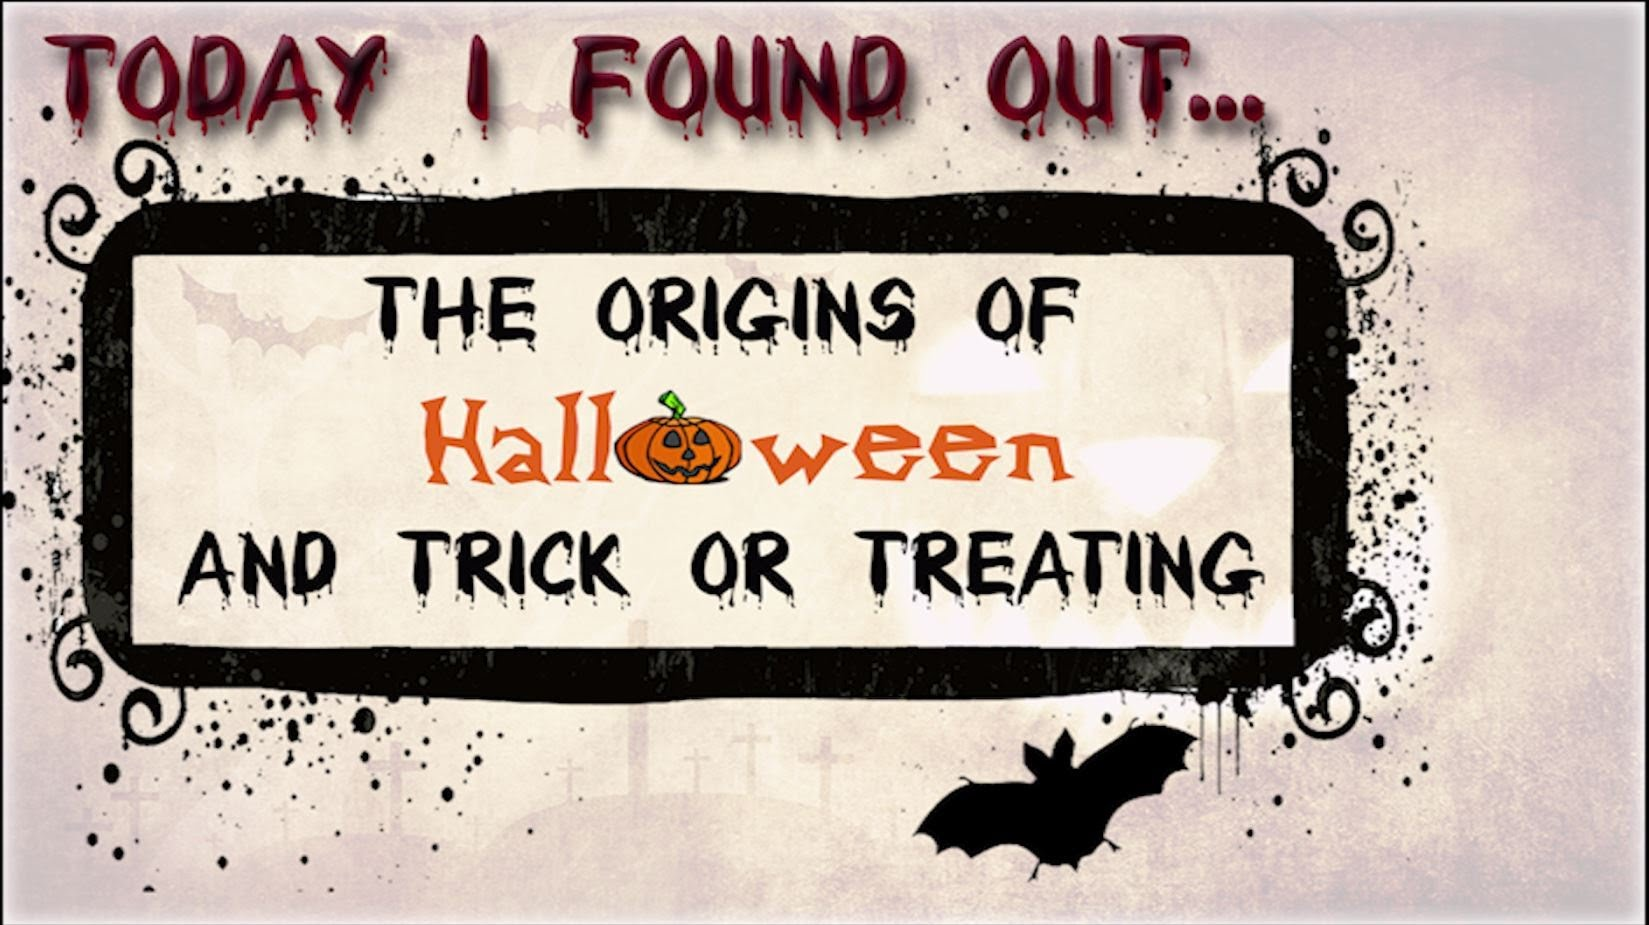 The Origins Of Trick Or Treating